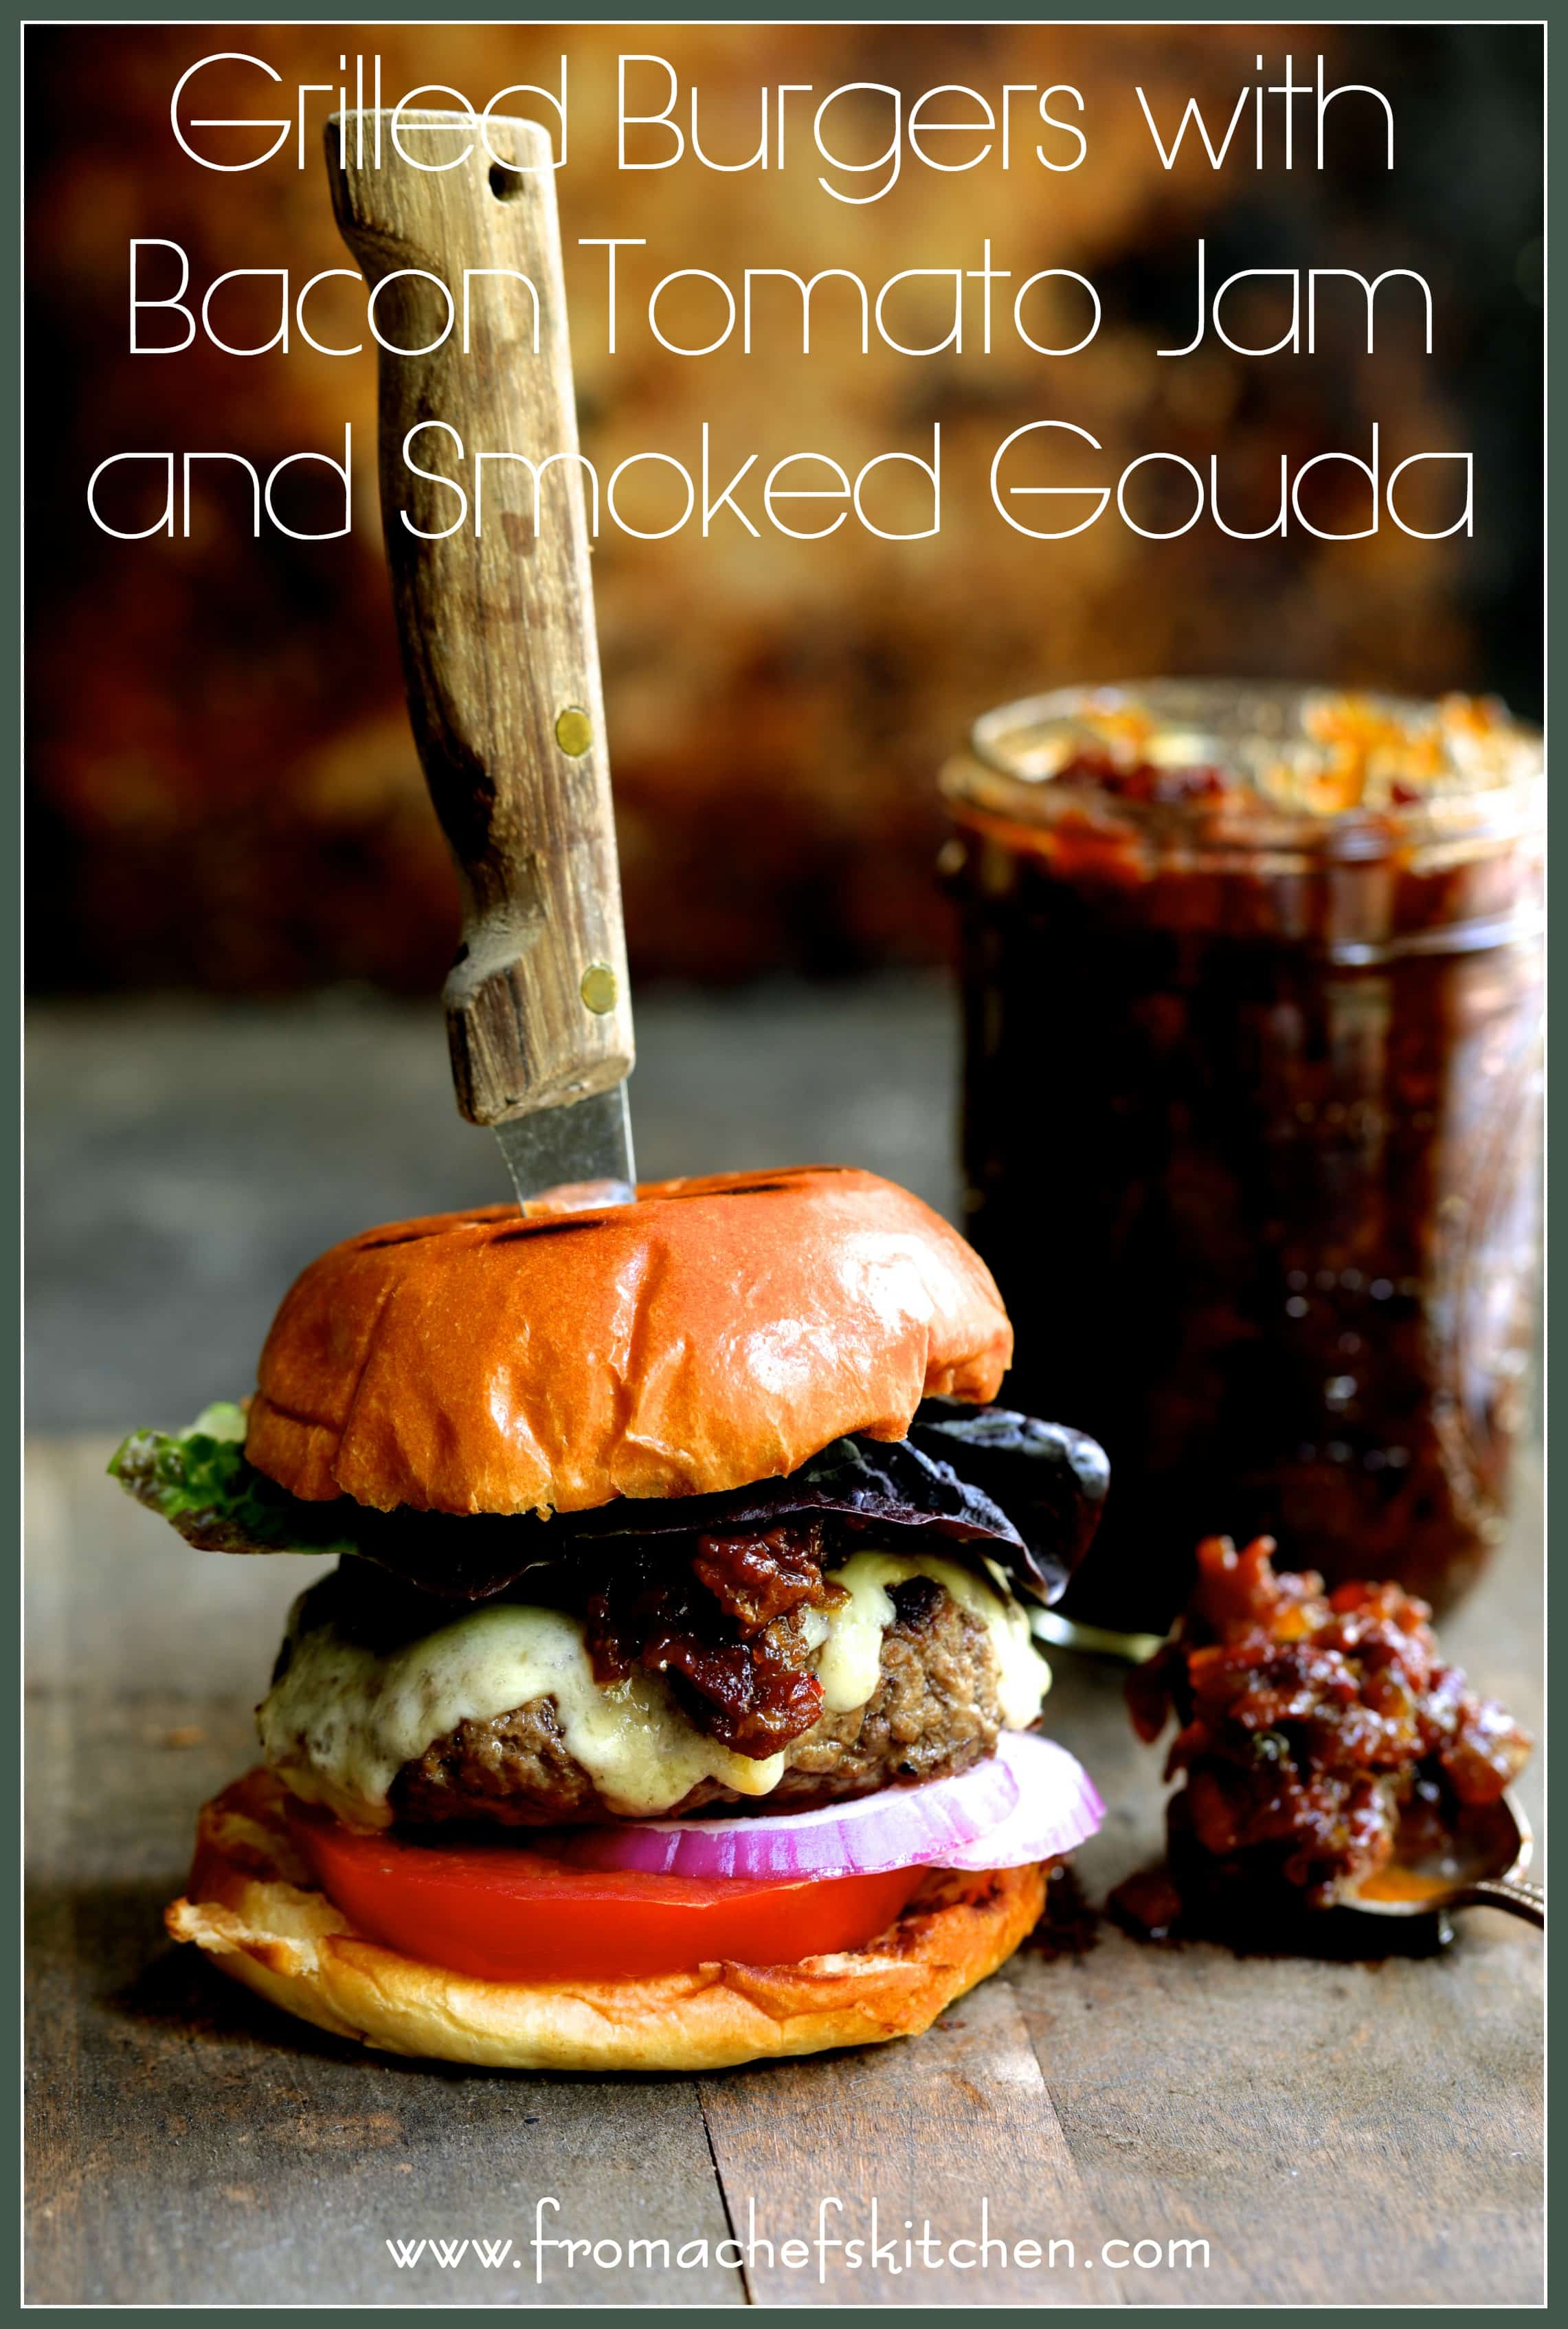 Msg 4 21+ - Time to get grilling!  Grilled Burgers with Bacon Tomato Jam and Smoked Gouda is a treat your dad will love!  #TheFreshMarket #TFMGetGrilling #CollectiveBias #sponsored #ad @TheFreshMarket